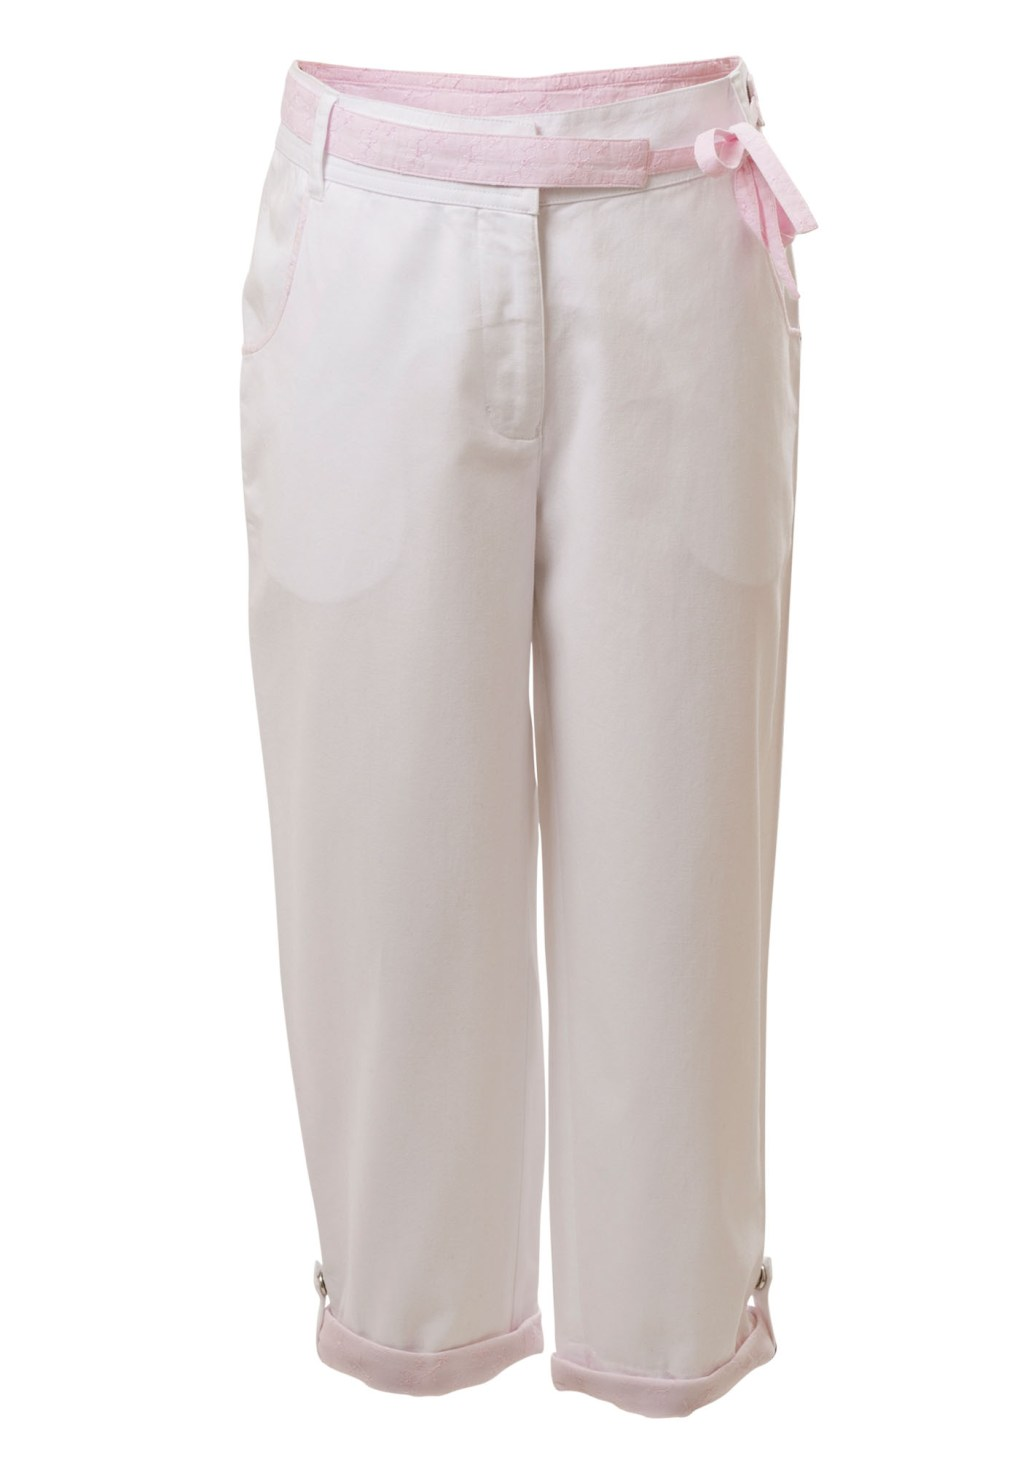 MINC Petite Kids Pink Ice Girls Capris in White Cotton Twill